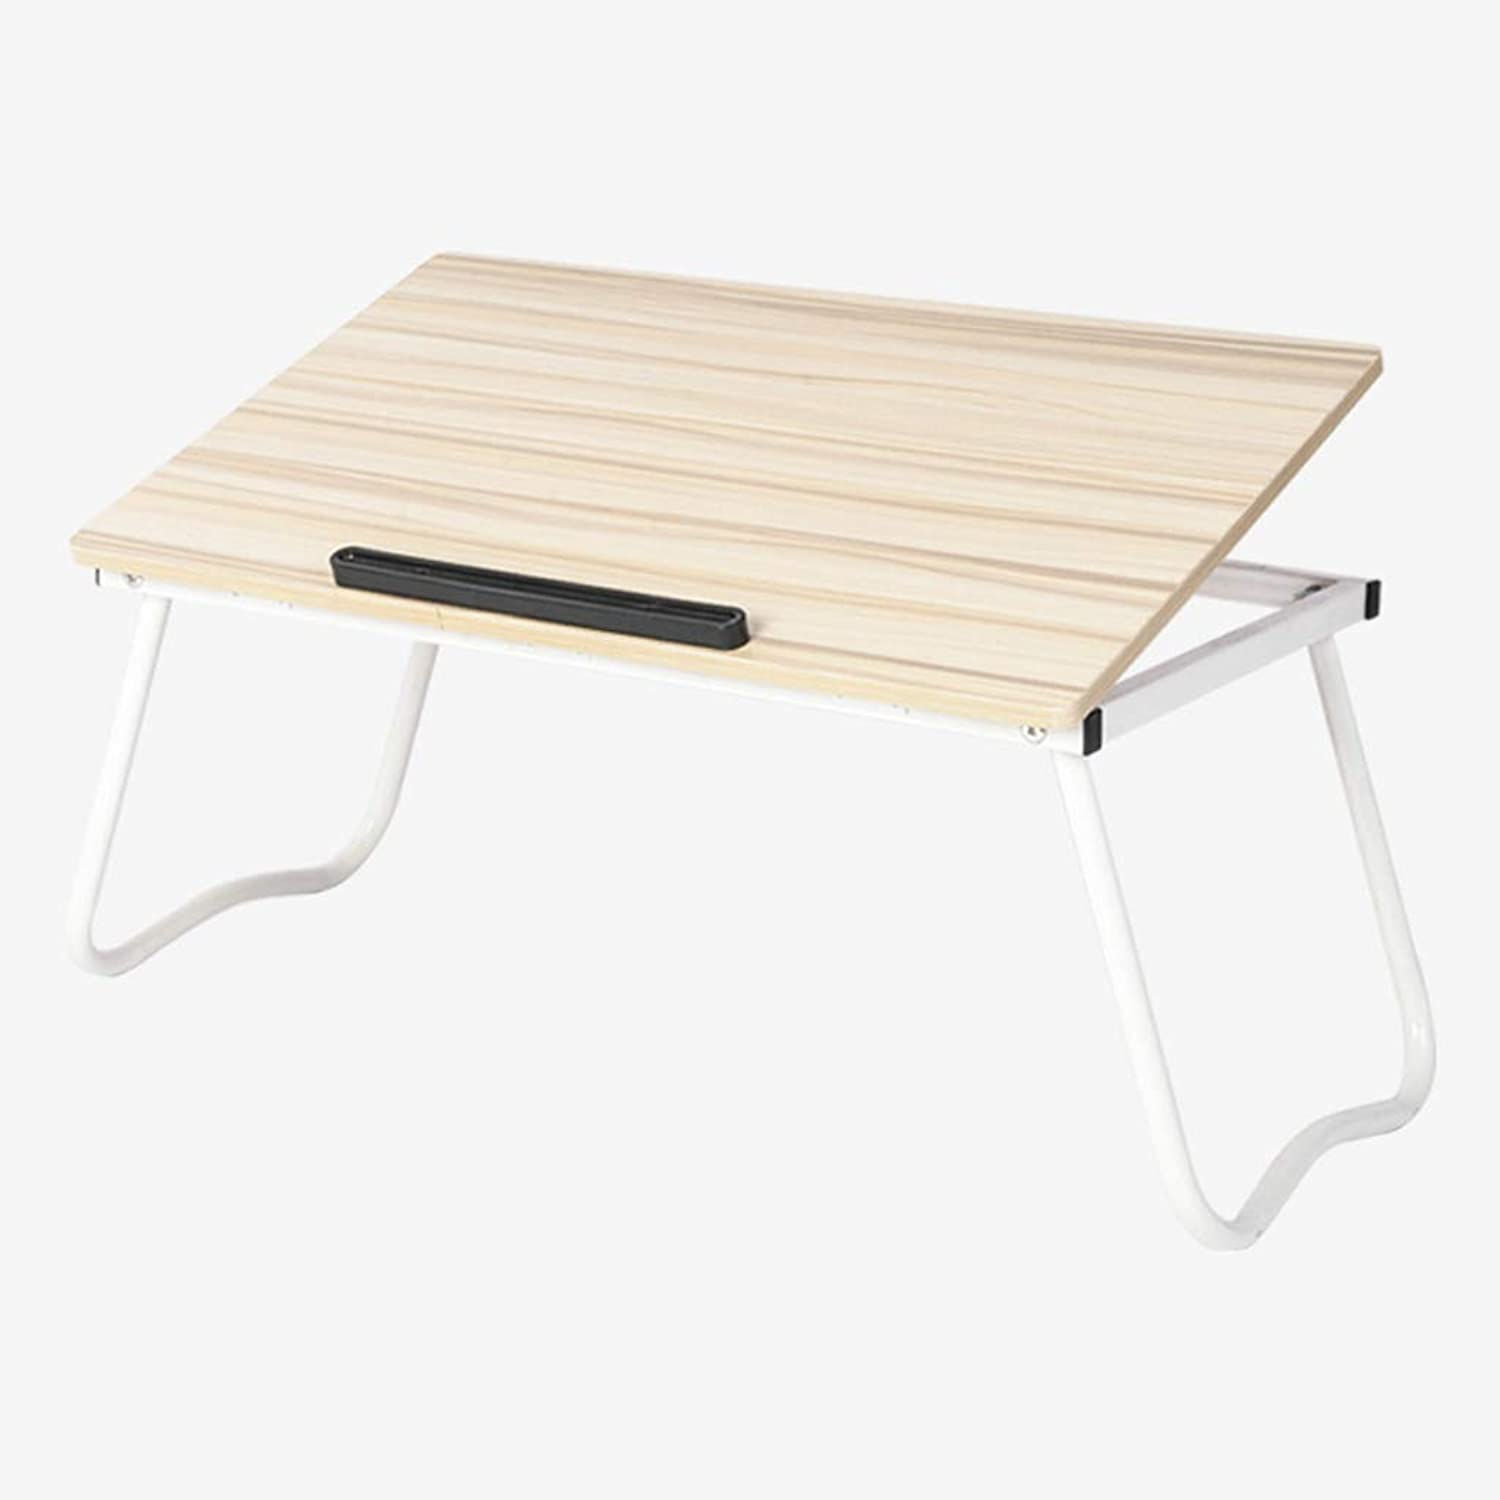 Laptop Bed Computer Table Lazy Table Free Inssizetion Foldable Lazy Small Table Simple Fashion Desk Study Table (color   A)